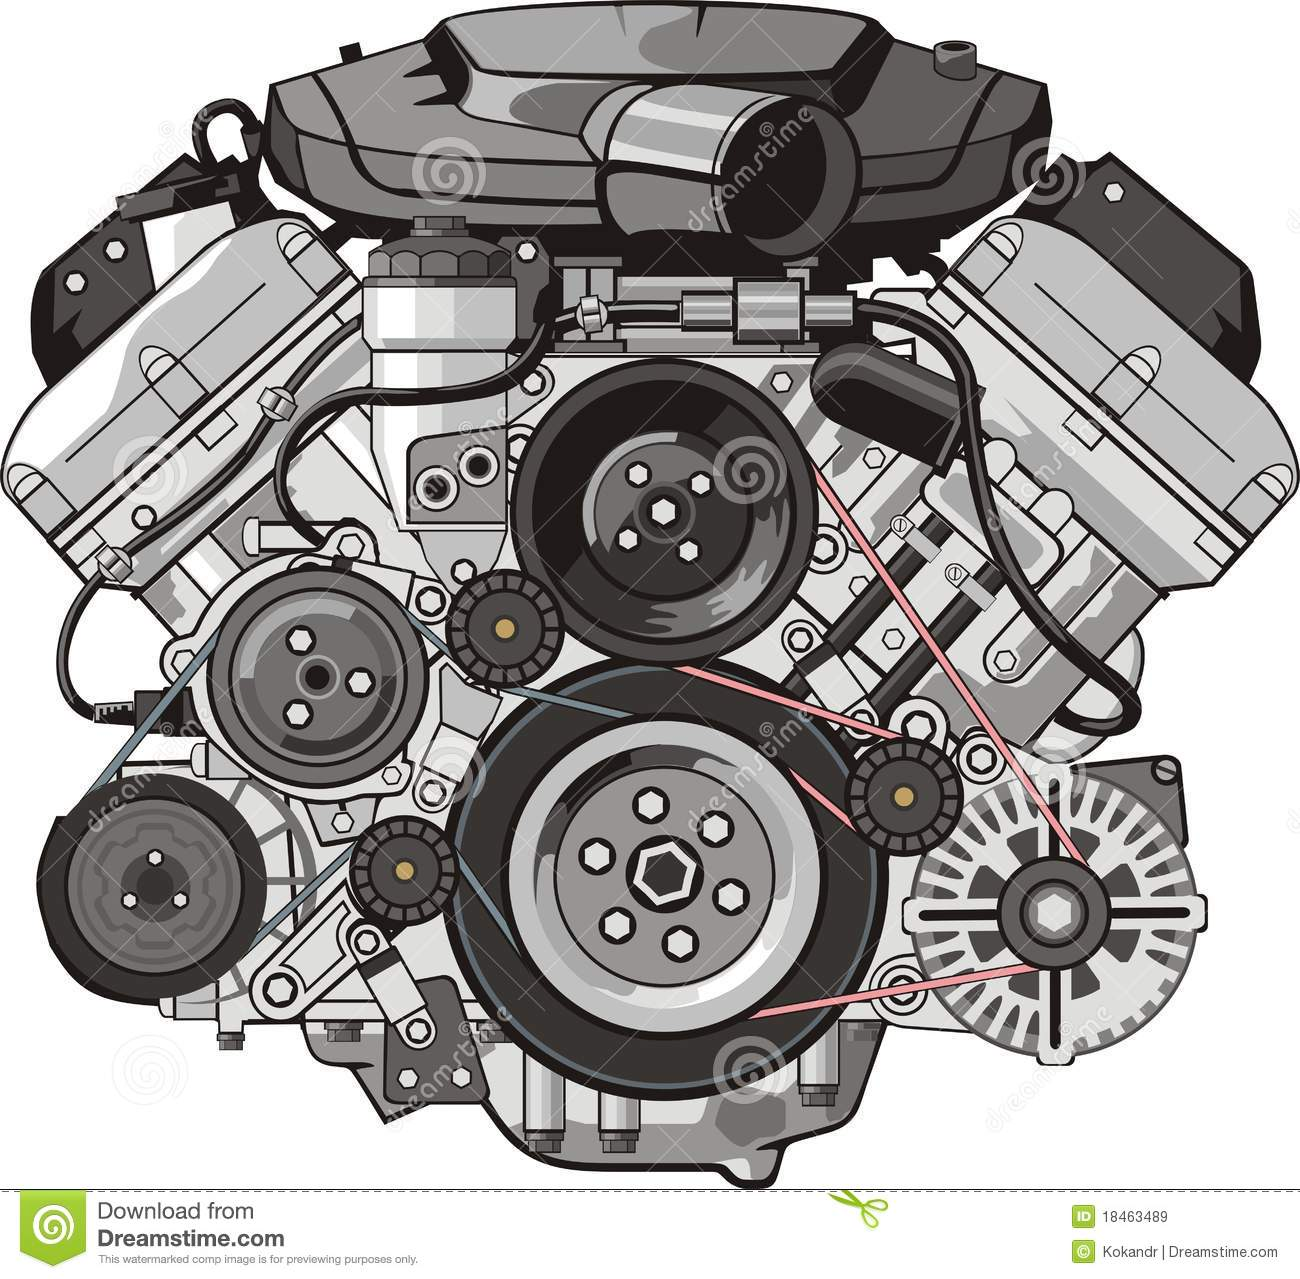 Engine Front Royalty Free Stock Images I-Engine Front Royalty Free Stock Images Image 18463489-5